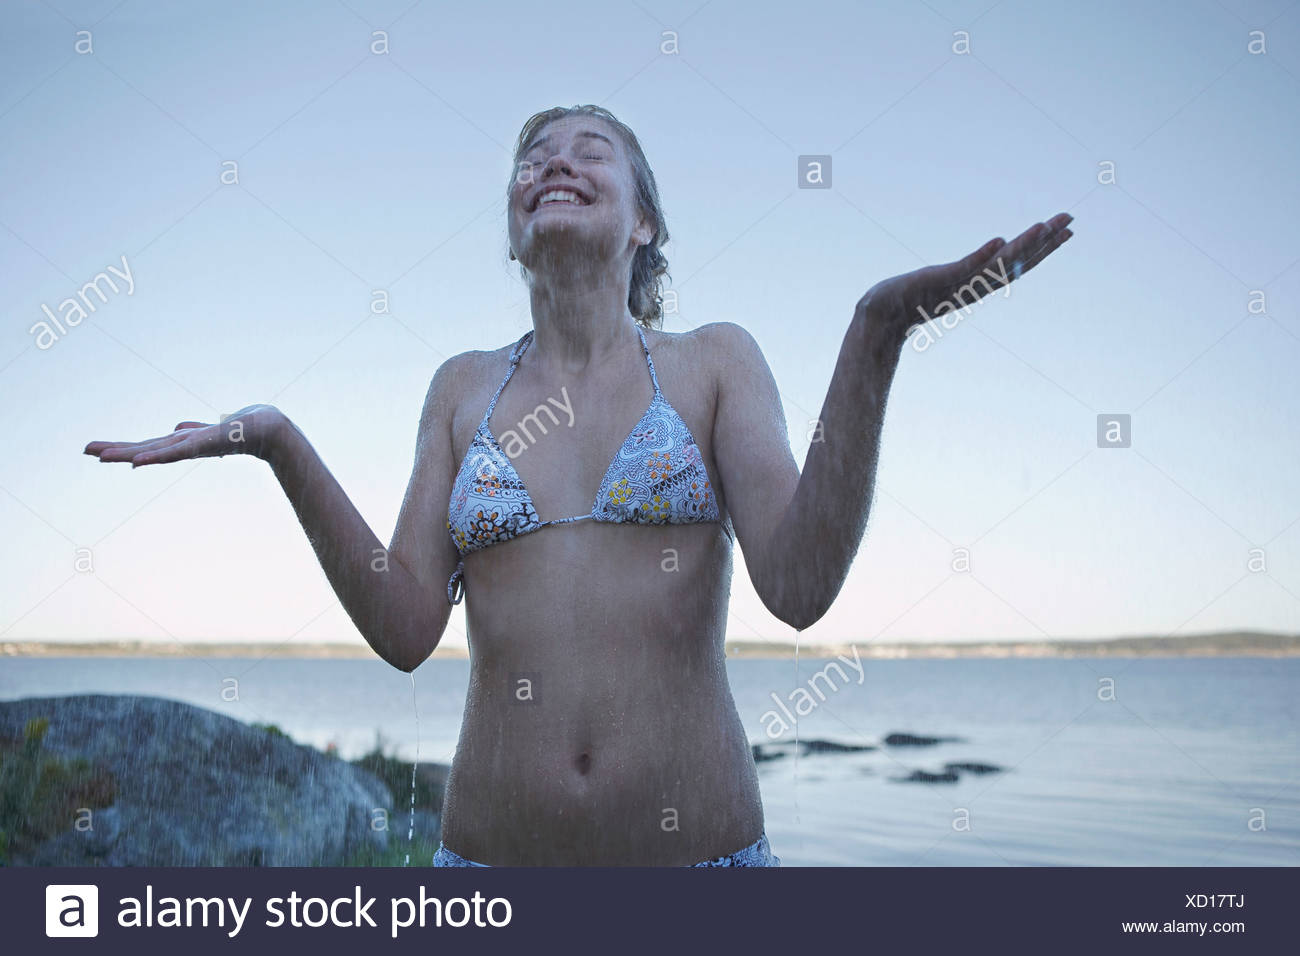 Young Woman in rain wearing bikini - Stock Image